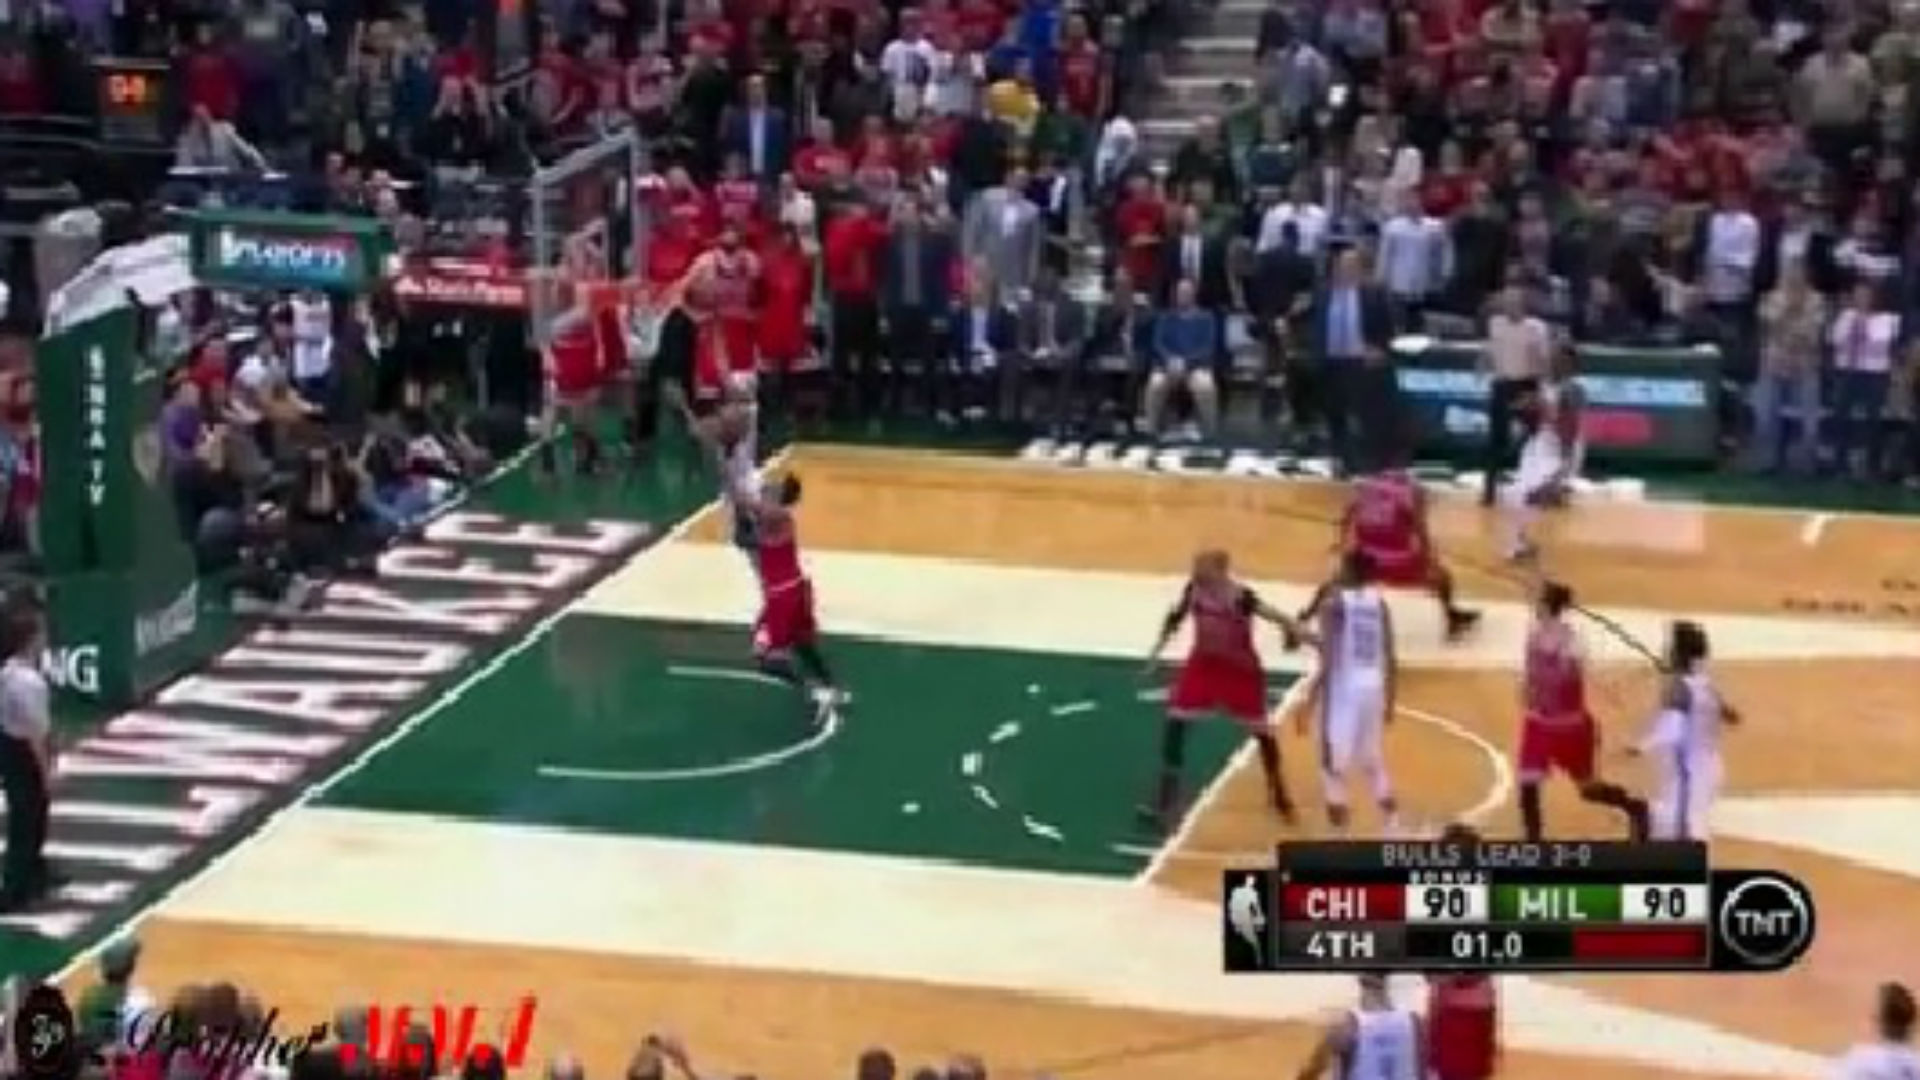 Jerryd Bayless hits buzzer-beating layup to help Bucks defeat Bulls